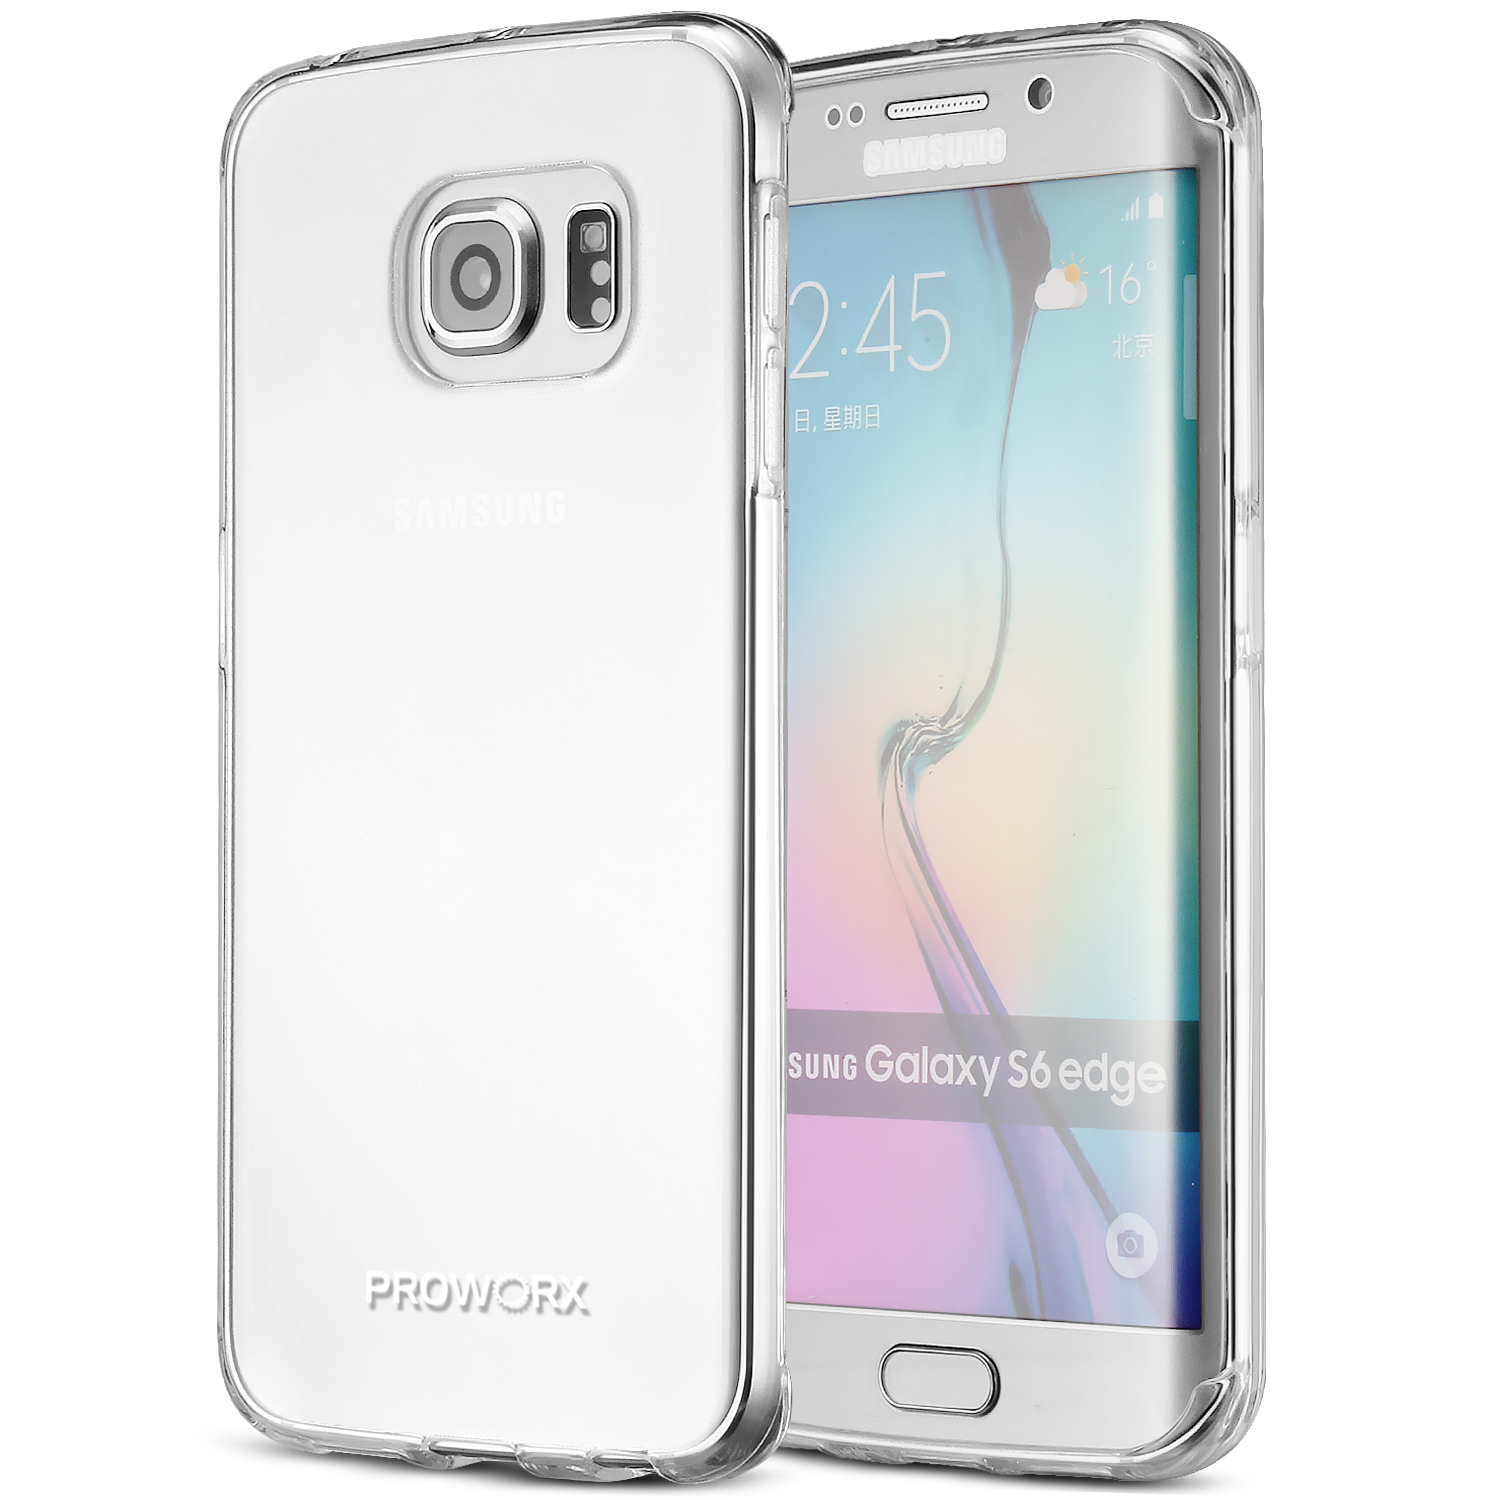 Samsung Galaxy S6 Edge Clear ProWorx Ultra Slim Thin Scratch Resistant TPU Silicone Case Cover